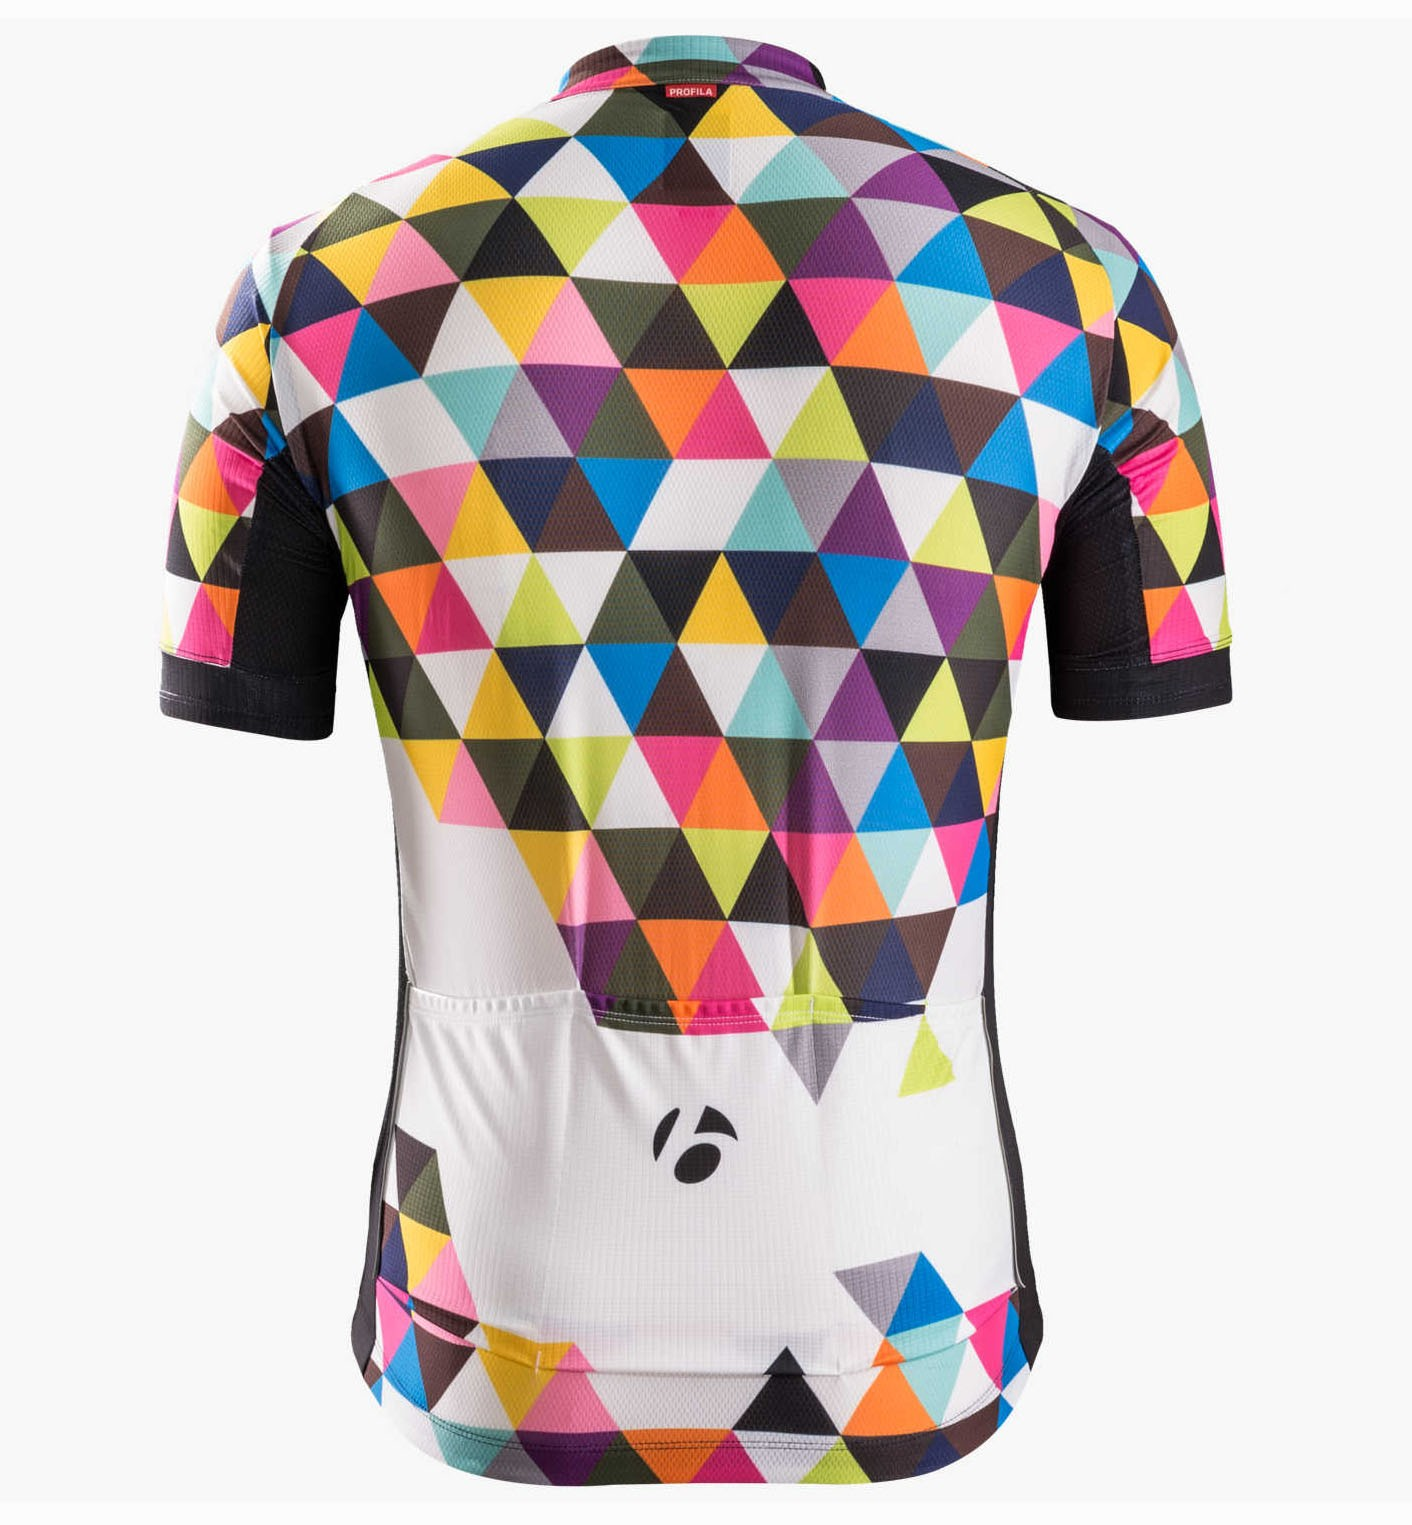 2016 Bontrager Specter Colorful Cycling Jersey And Bib